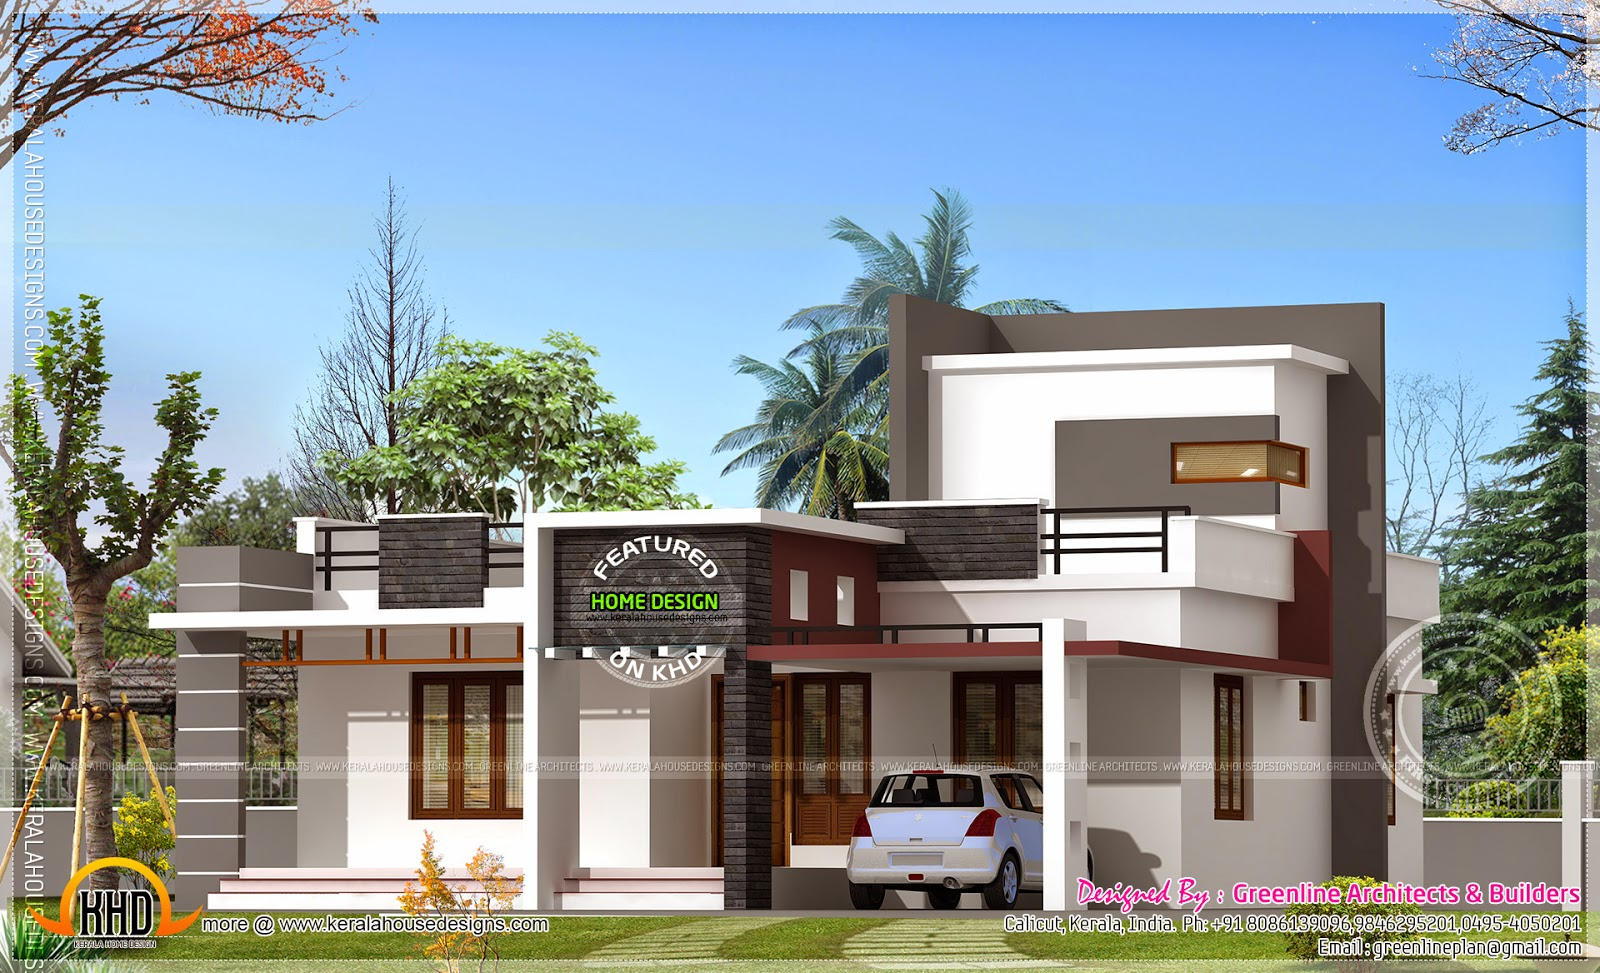 3 bedroom house in 1568 sq feet home kerala plans for House designs 950 sq ft